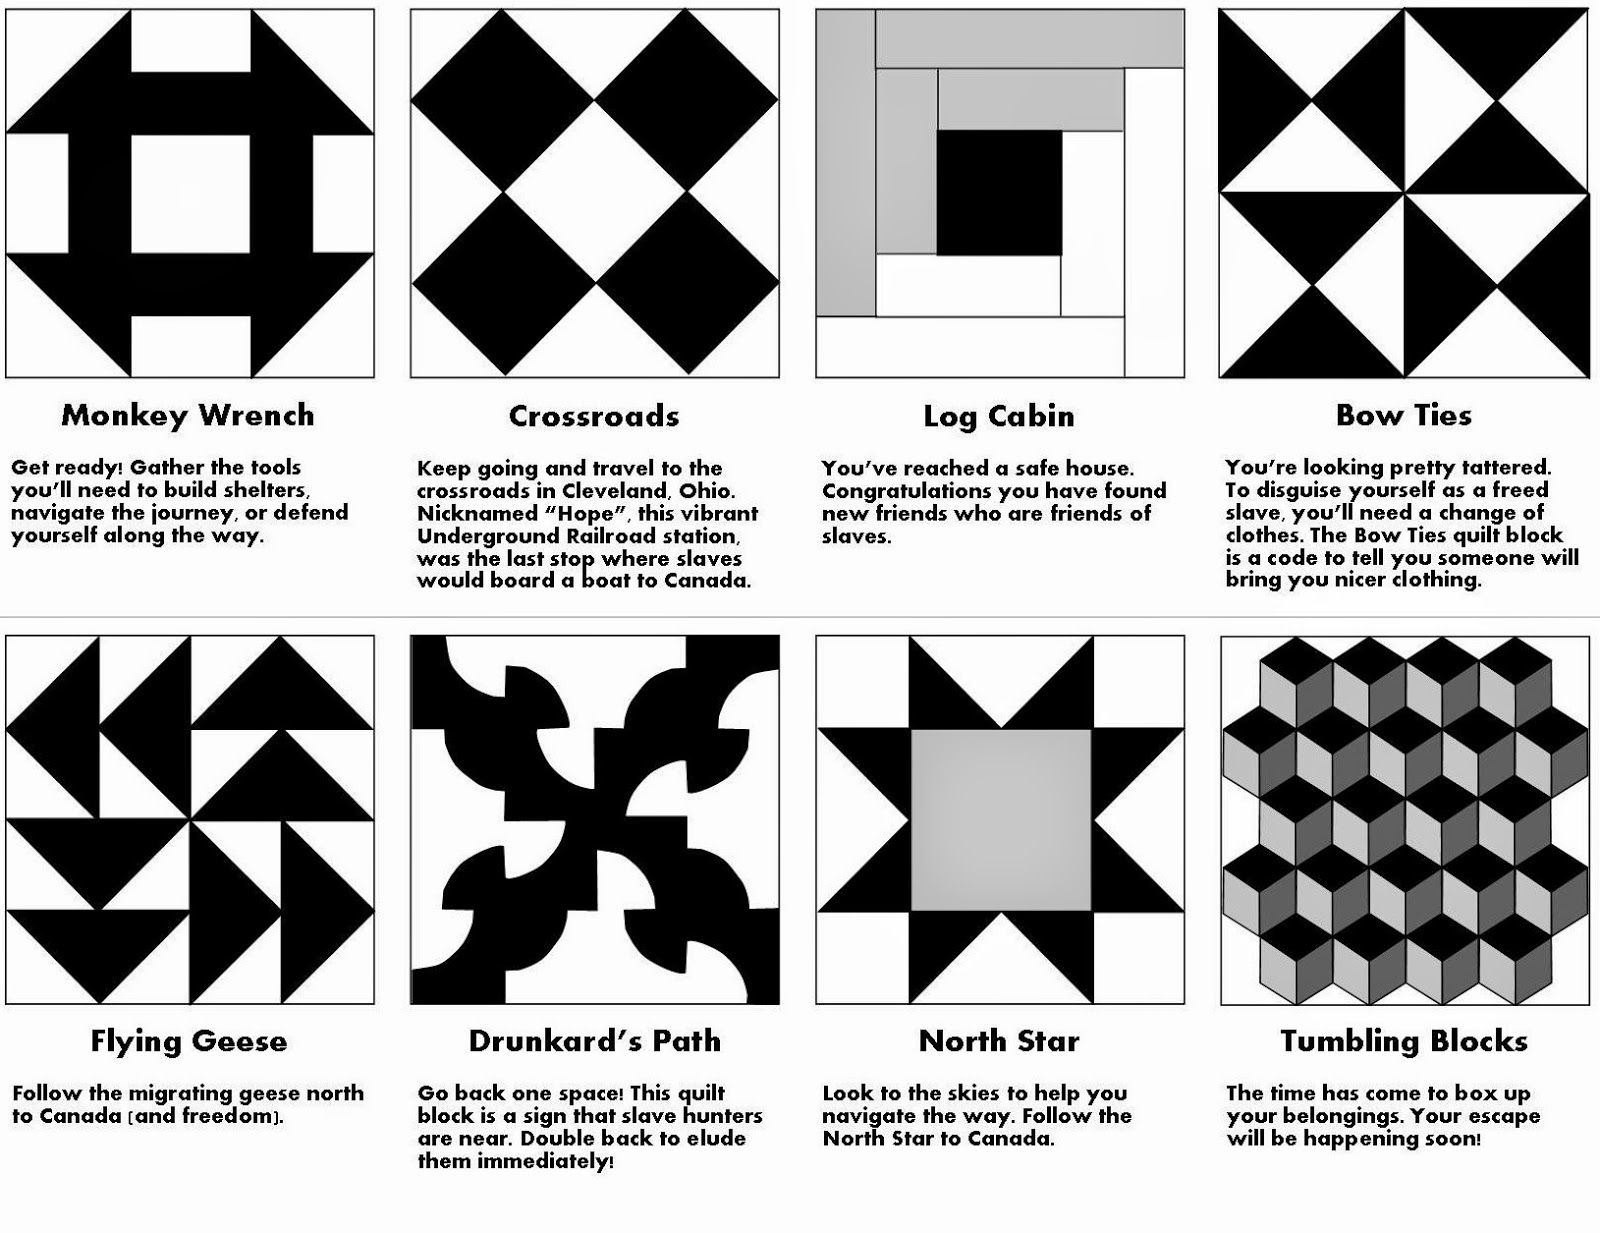 Quilt Patterns Used During The Underground Railroad : Relentlessly Fun, Deceptively Educational: Printable Underground Railroad Quilt Code Game